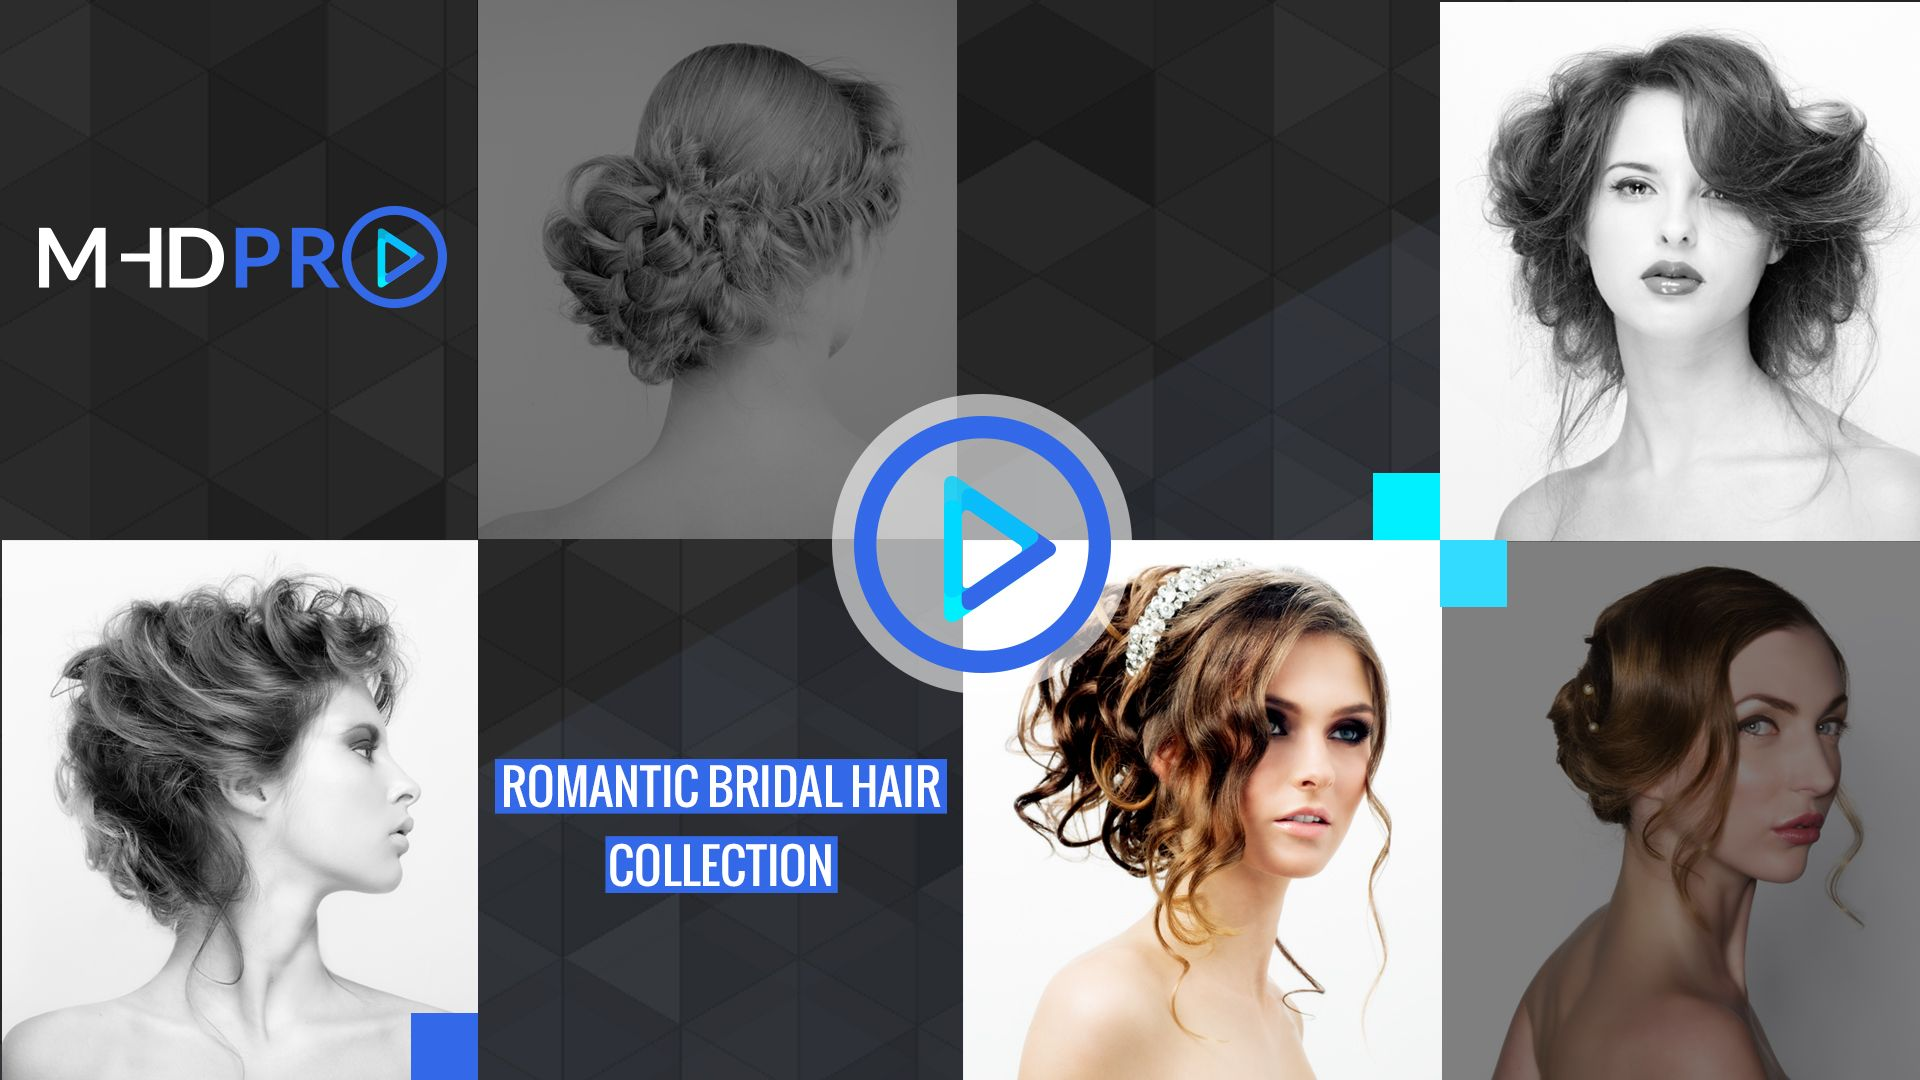 the romantic bridal hair online course from mhdpro | dressing